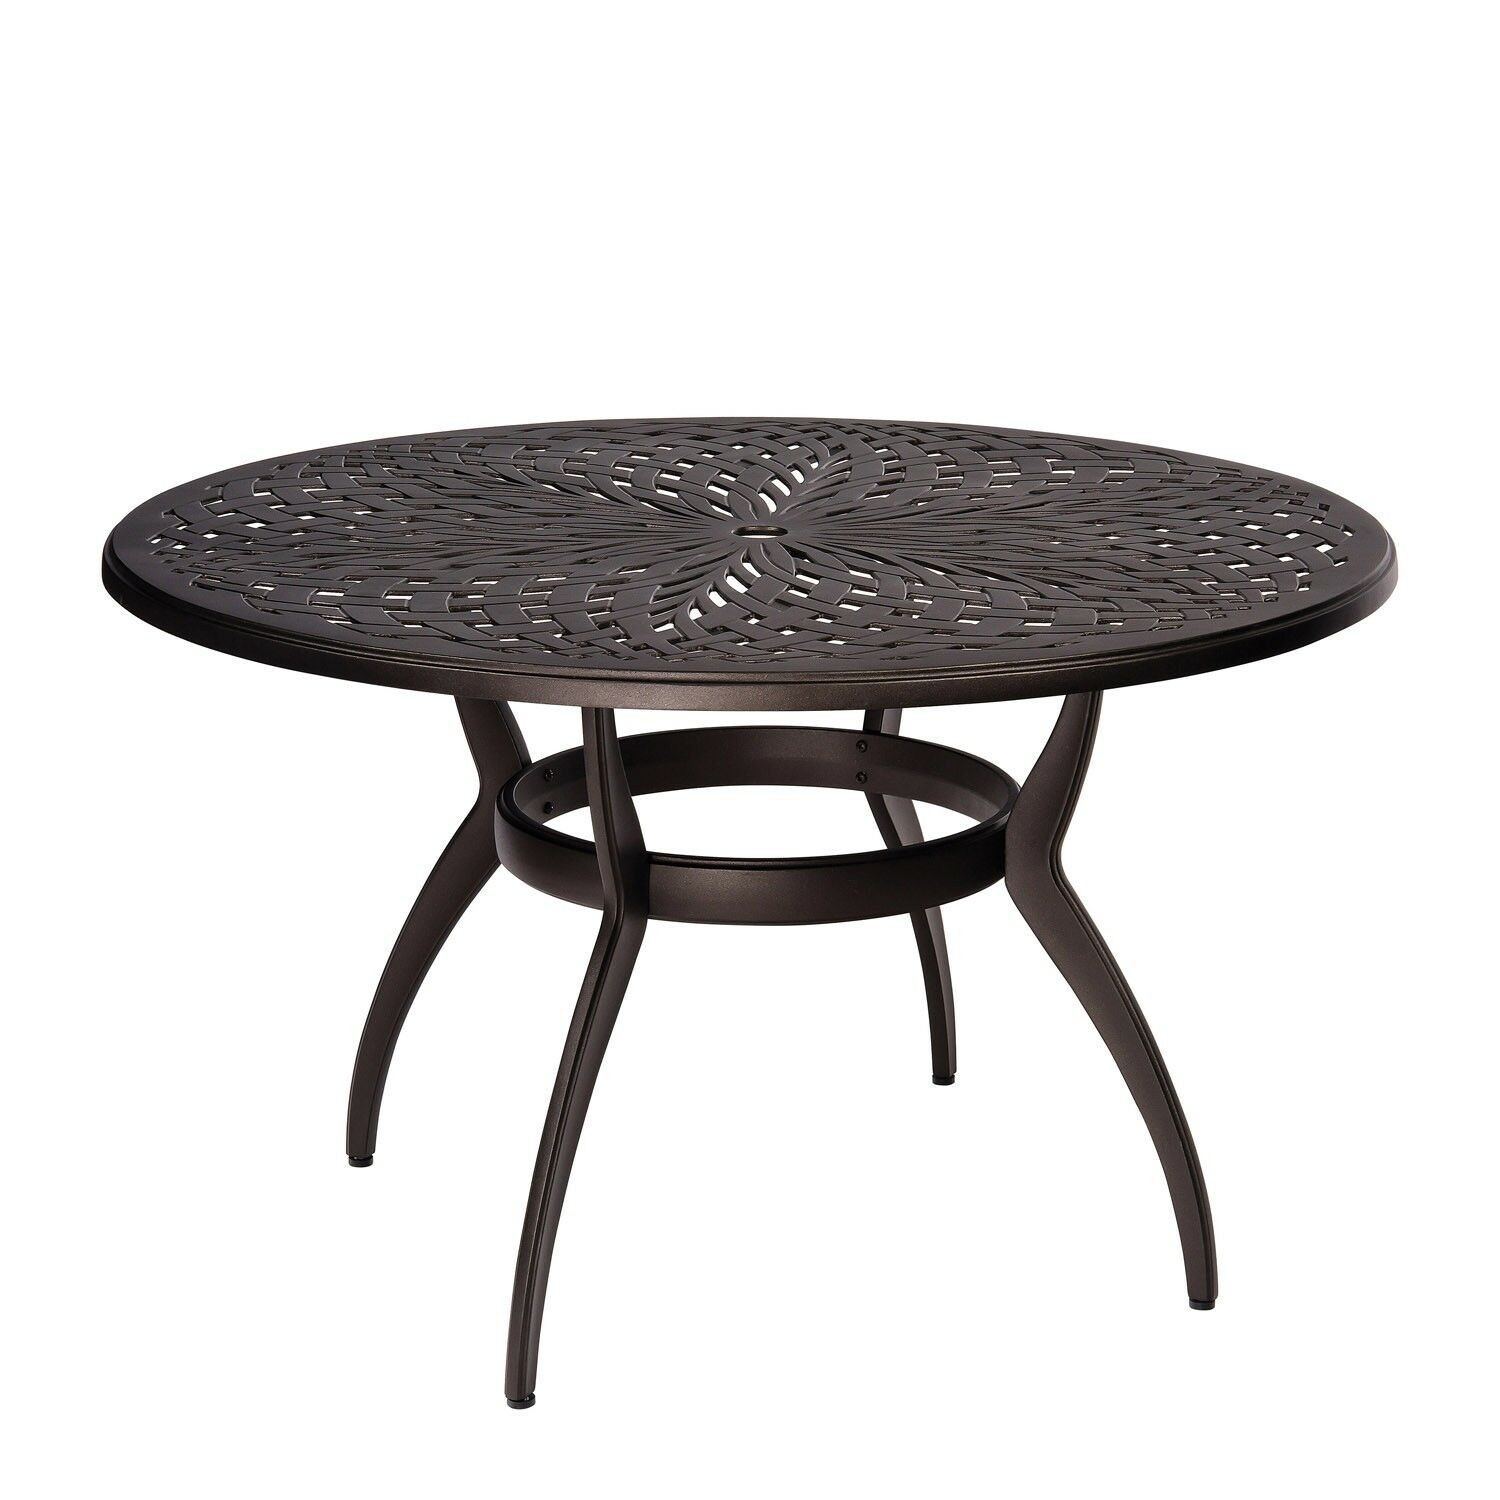 Apollo Round Umbrella Dining Table Frame Color: Pewter Finish